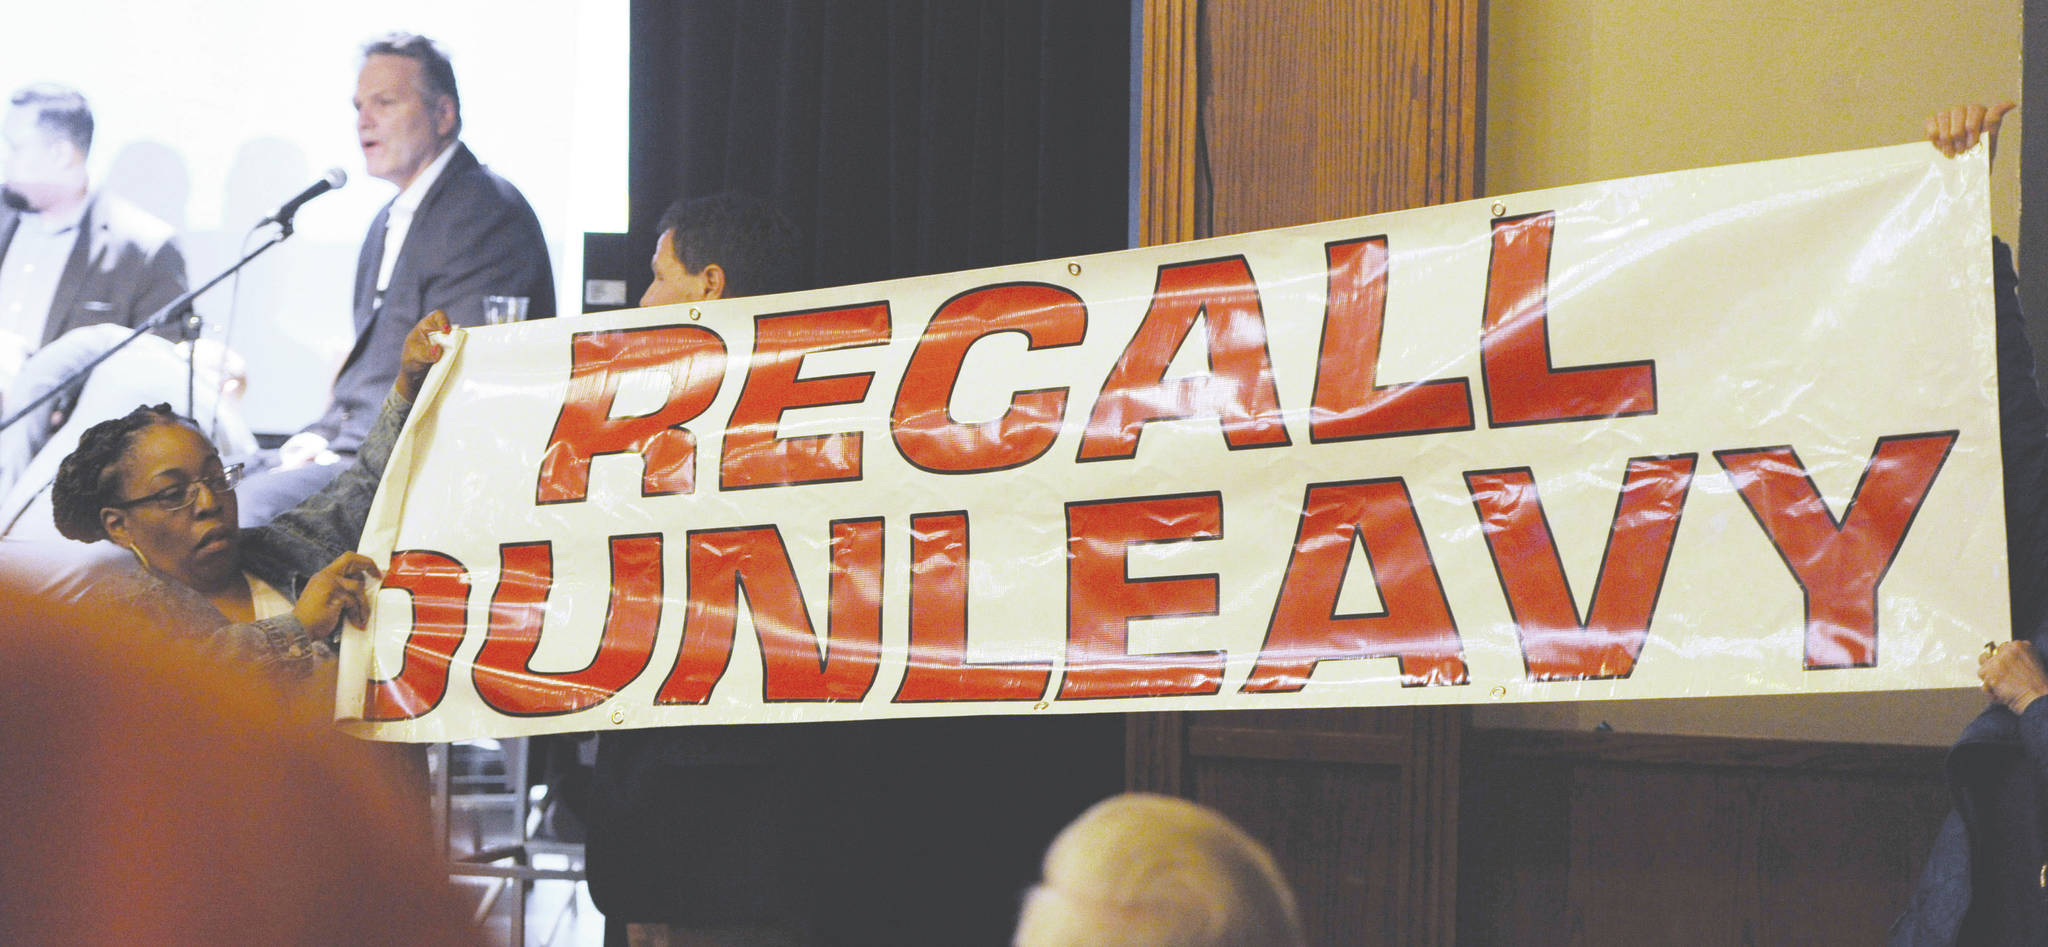 In this March 26, 2019, file photo, protesters unfurl a banner as Alaska Gov. Mike Dunleavy speaks during a roadshow with Americans for Prosperity in 49th State Brewing Company in Anchorage. The group opposing an effort to recall Alaska Gov. Mike Dunleavy plans to drop its court fight and instead gear up for a possible recall election. Stand Tall With Mike said Tuesday, Feb. 18, 2020, that it told its attorneys to withdraw its appeal before the Alaska Supreme Court. The group says recent court actions indicate that continuing to pursue the case in court would not be a productive use of resources. (Bill Roth/Anchorage Daily News via AP, File)